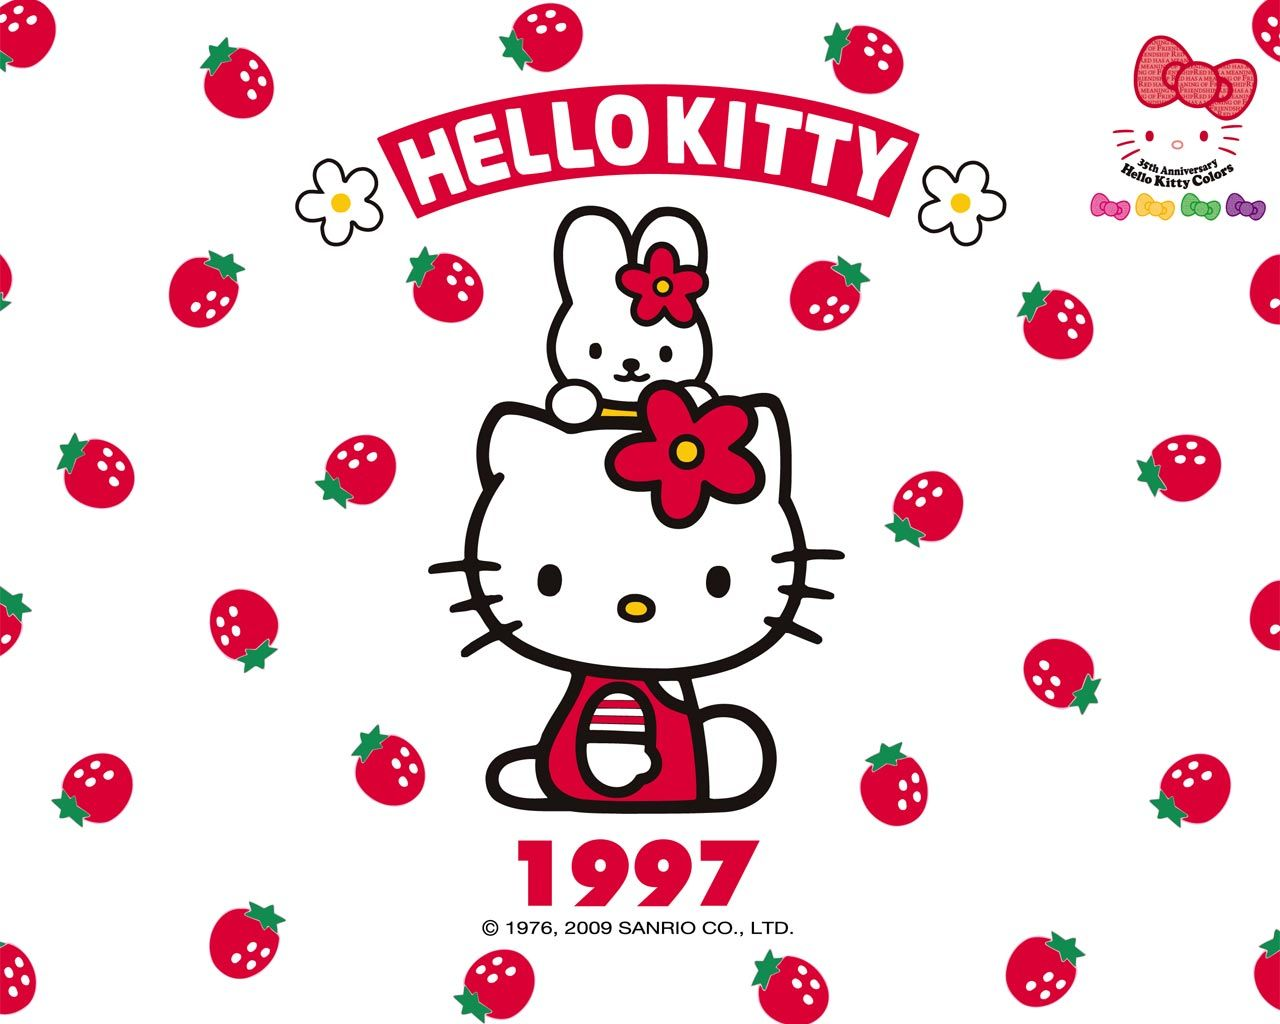 Simple Wallpaper Hello Kitty Strawberry - bfc7394af247dab2d22378ce63f4b457  You Should Have_756135.jpg